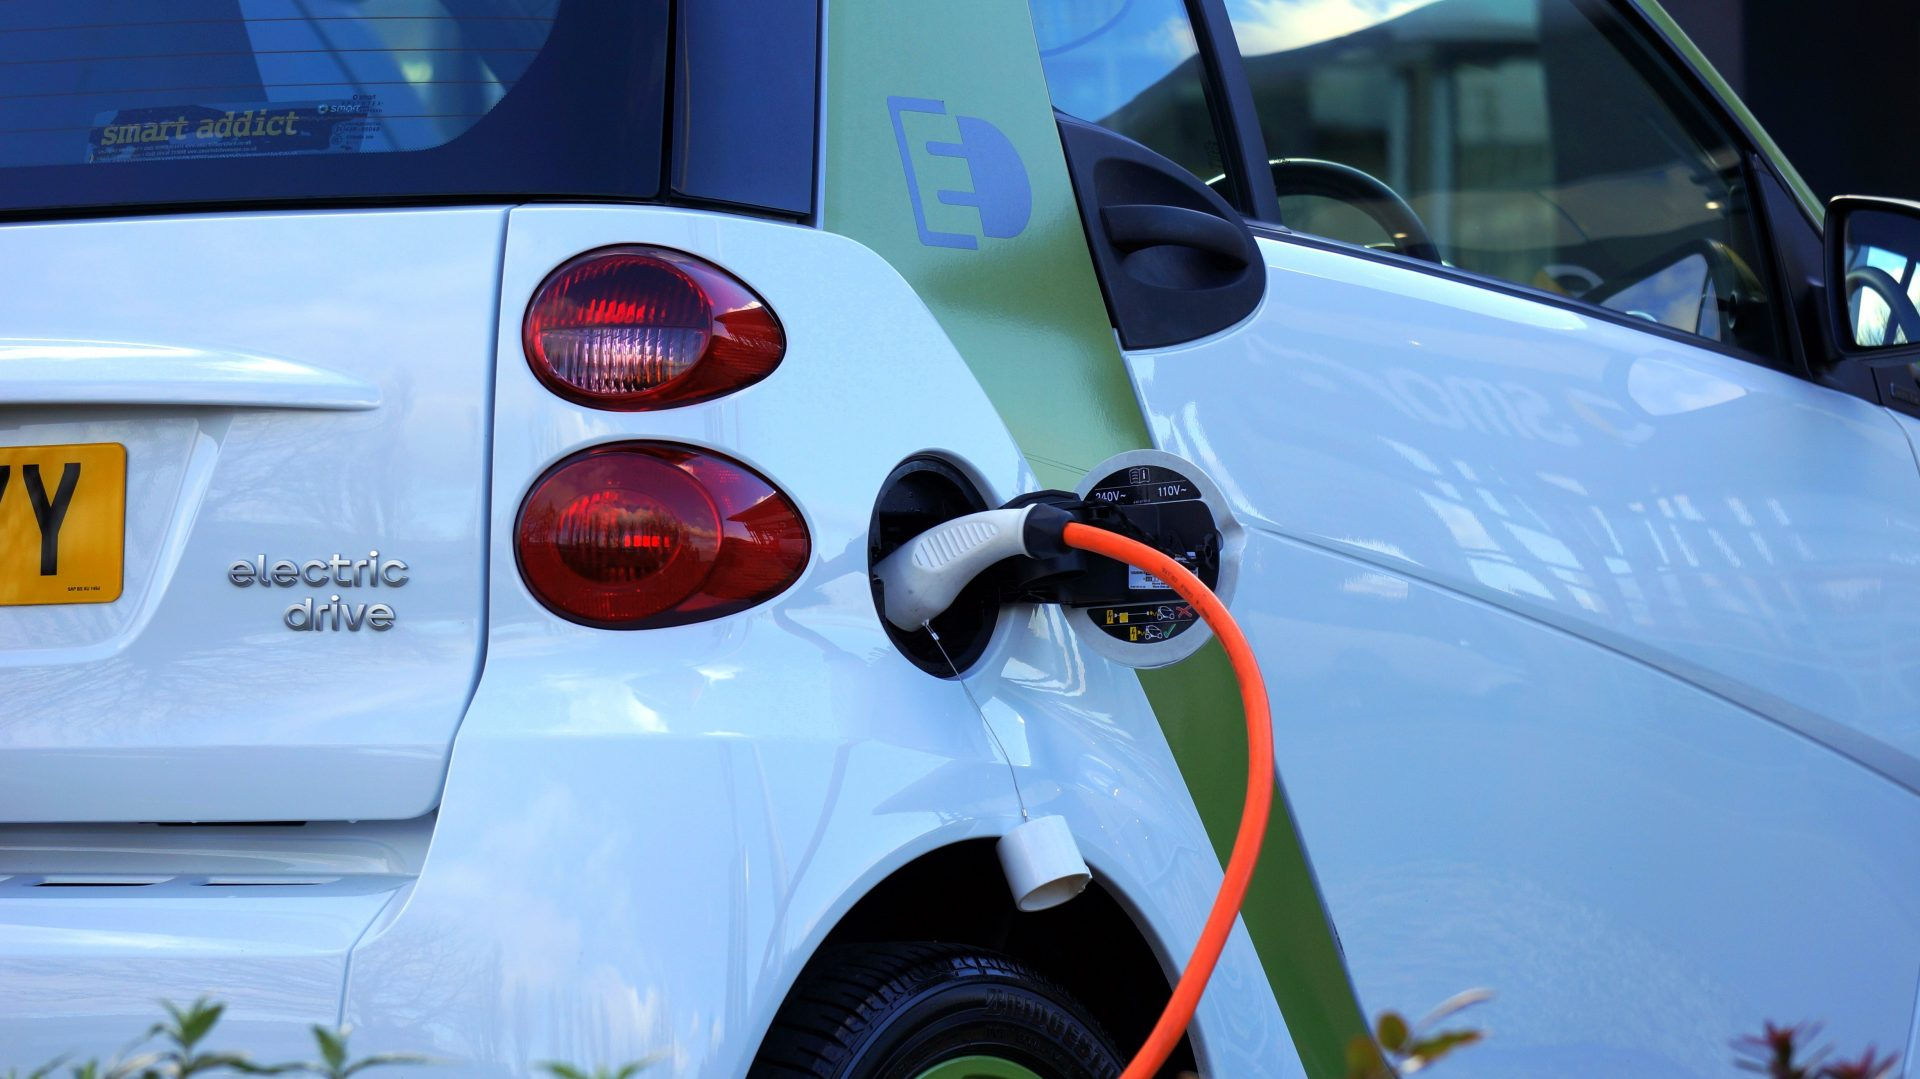 Why Electric Cars are Bad for the Environment